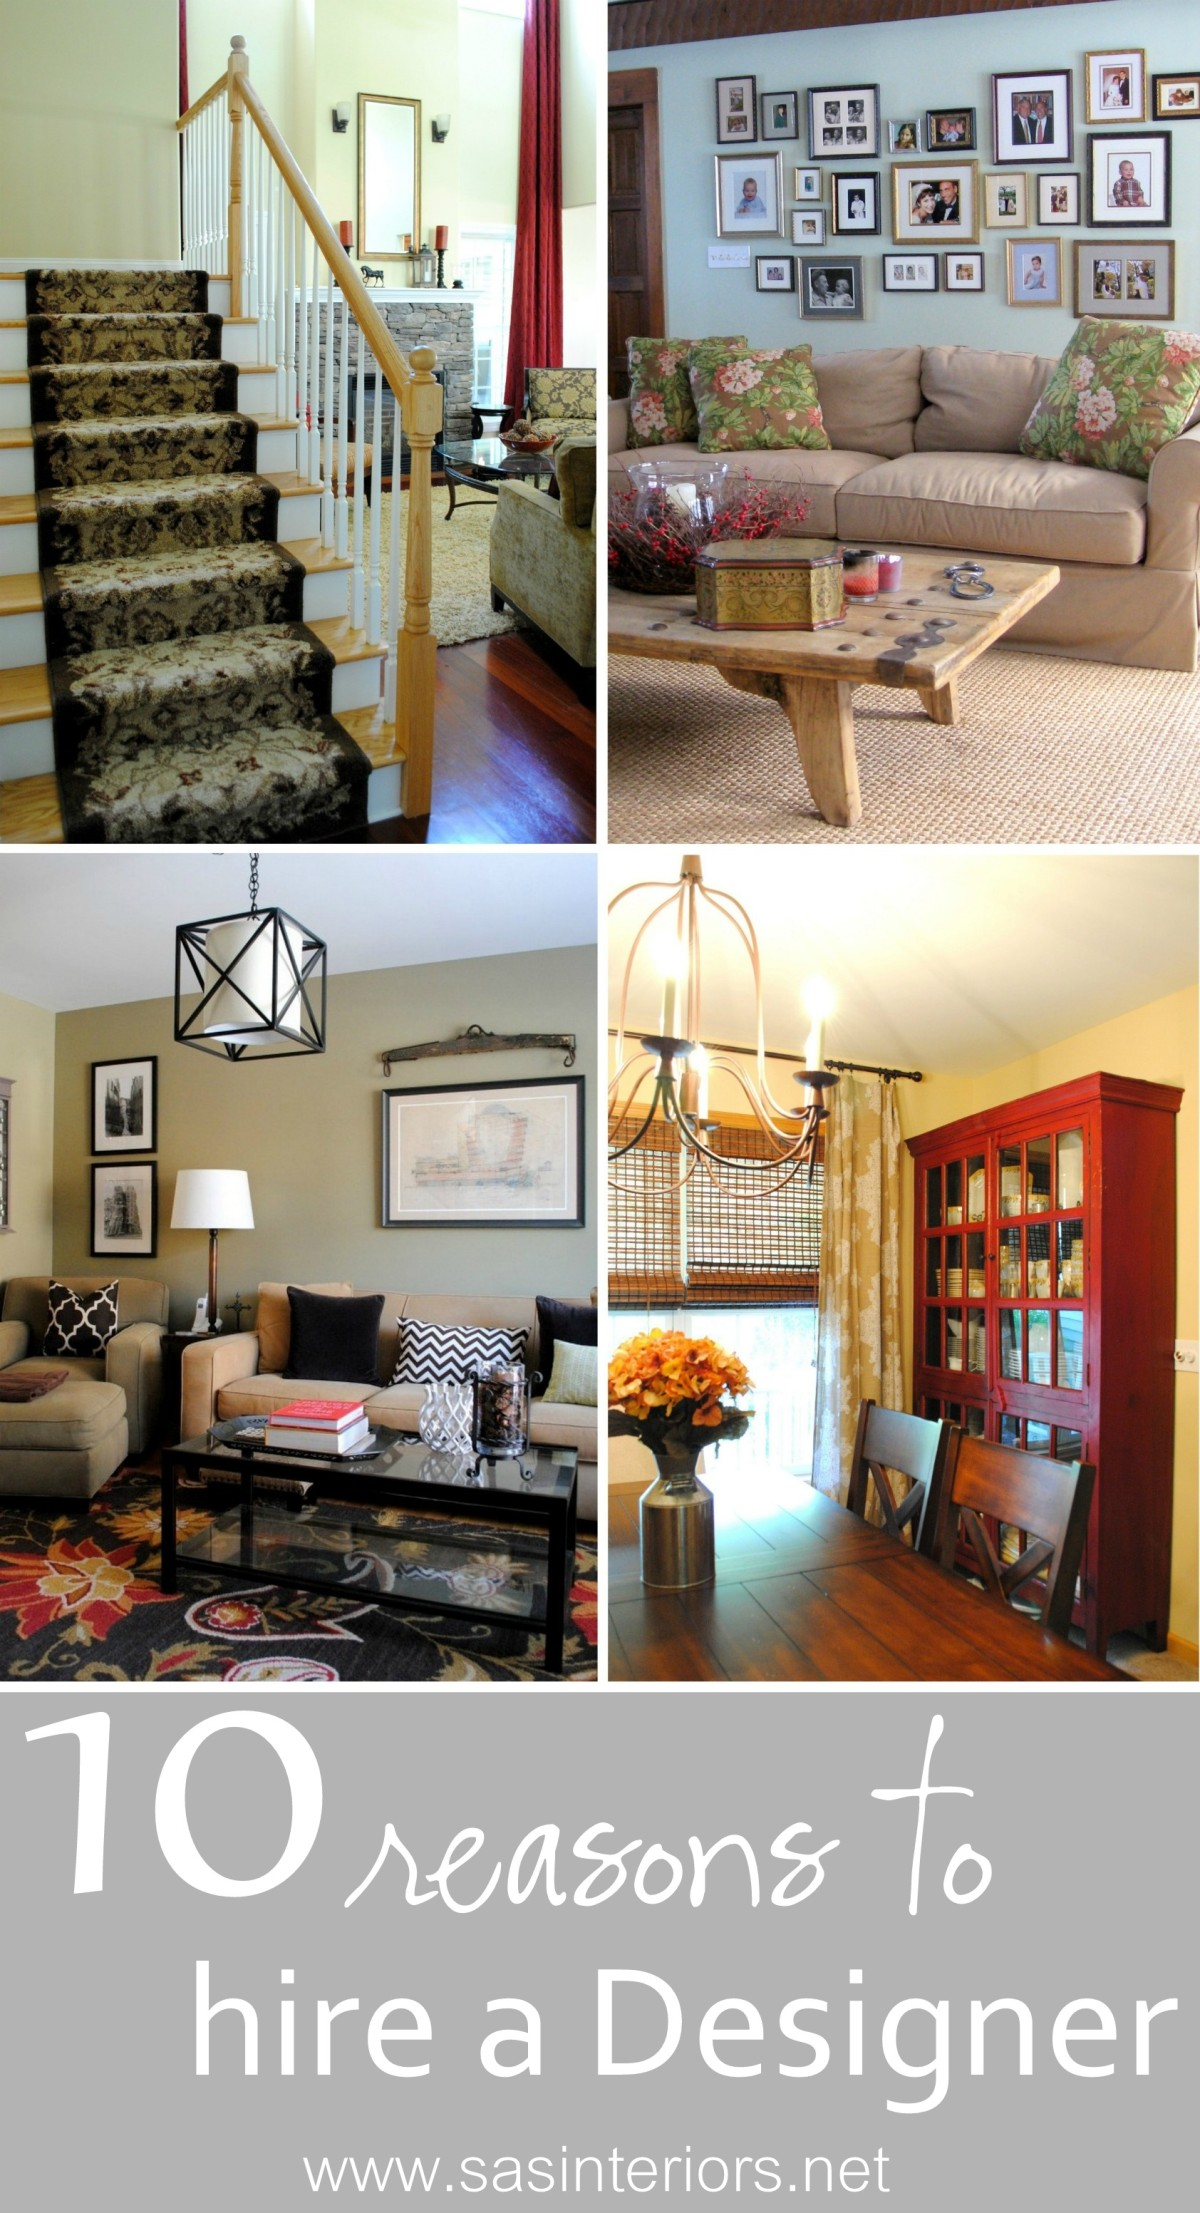 10 reasons to hire an interior designer jenna burger - Interior decorator students for hire ...